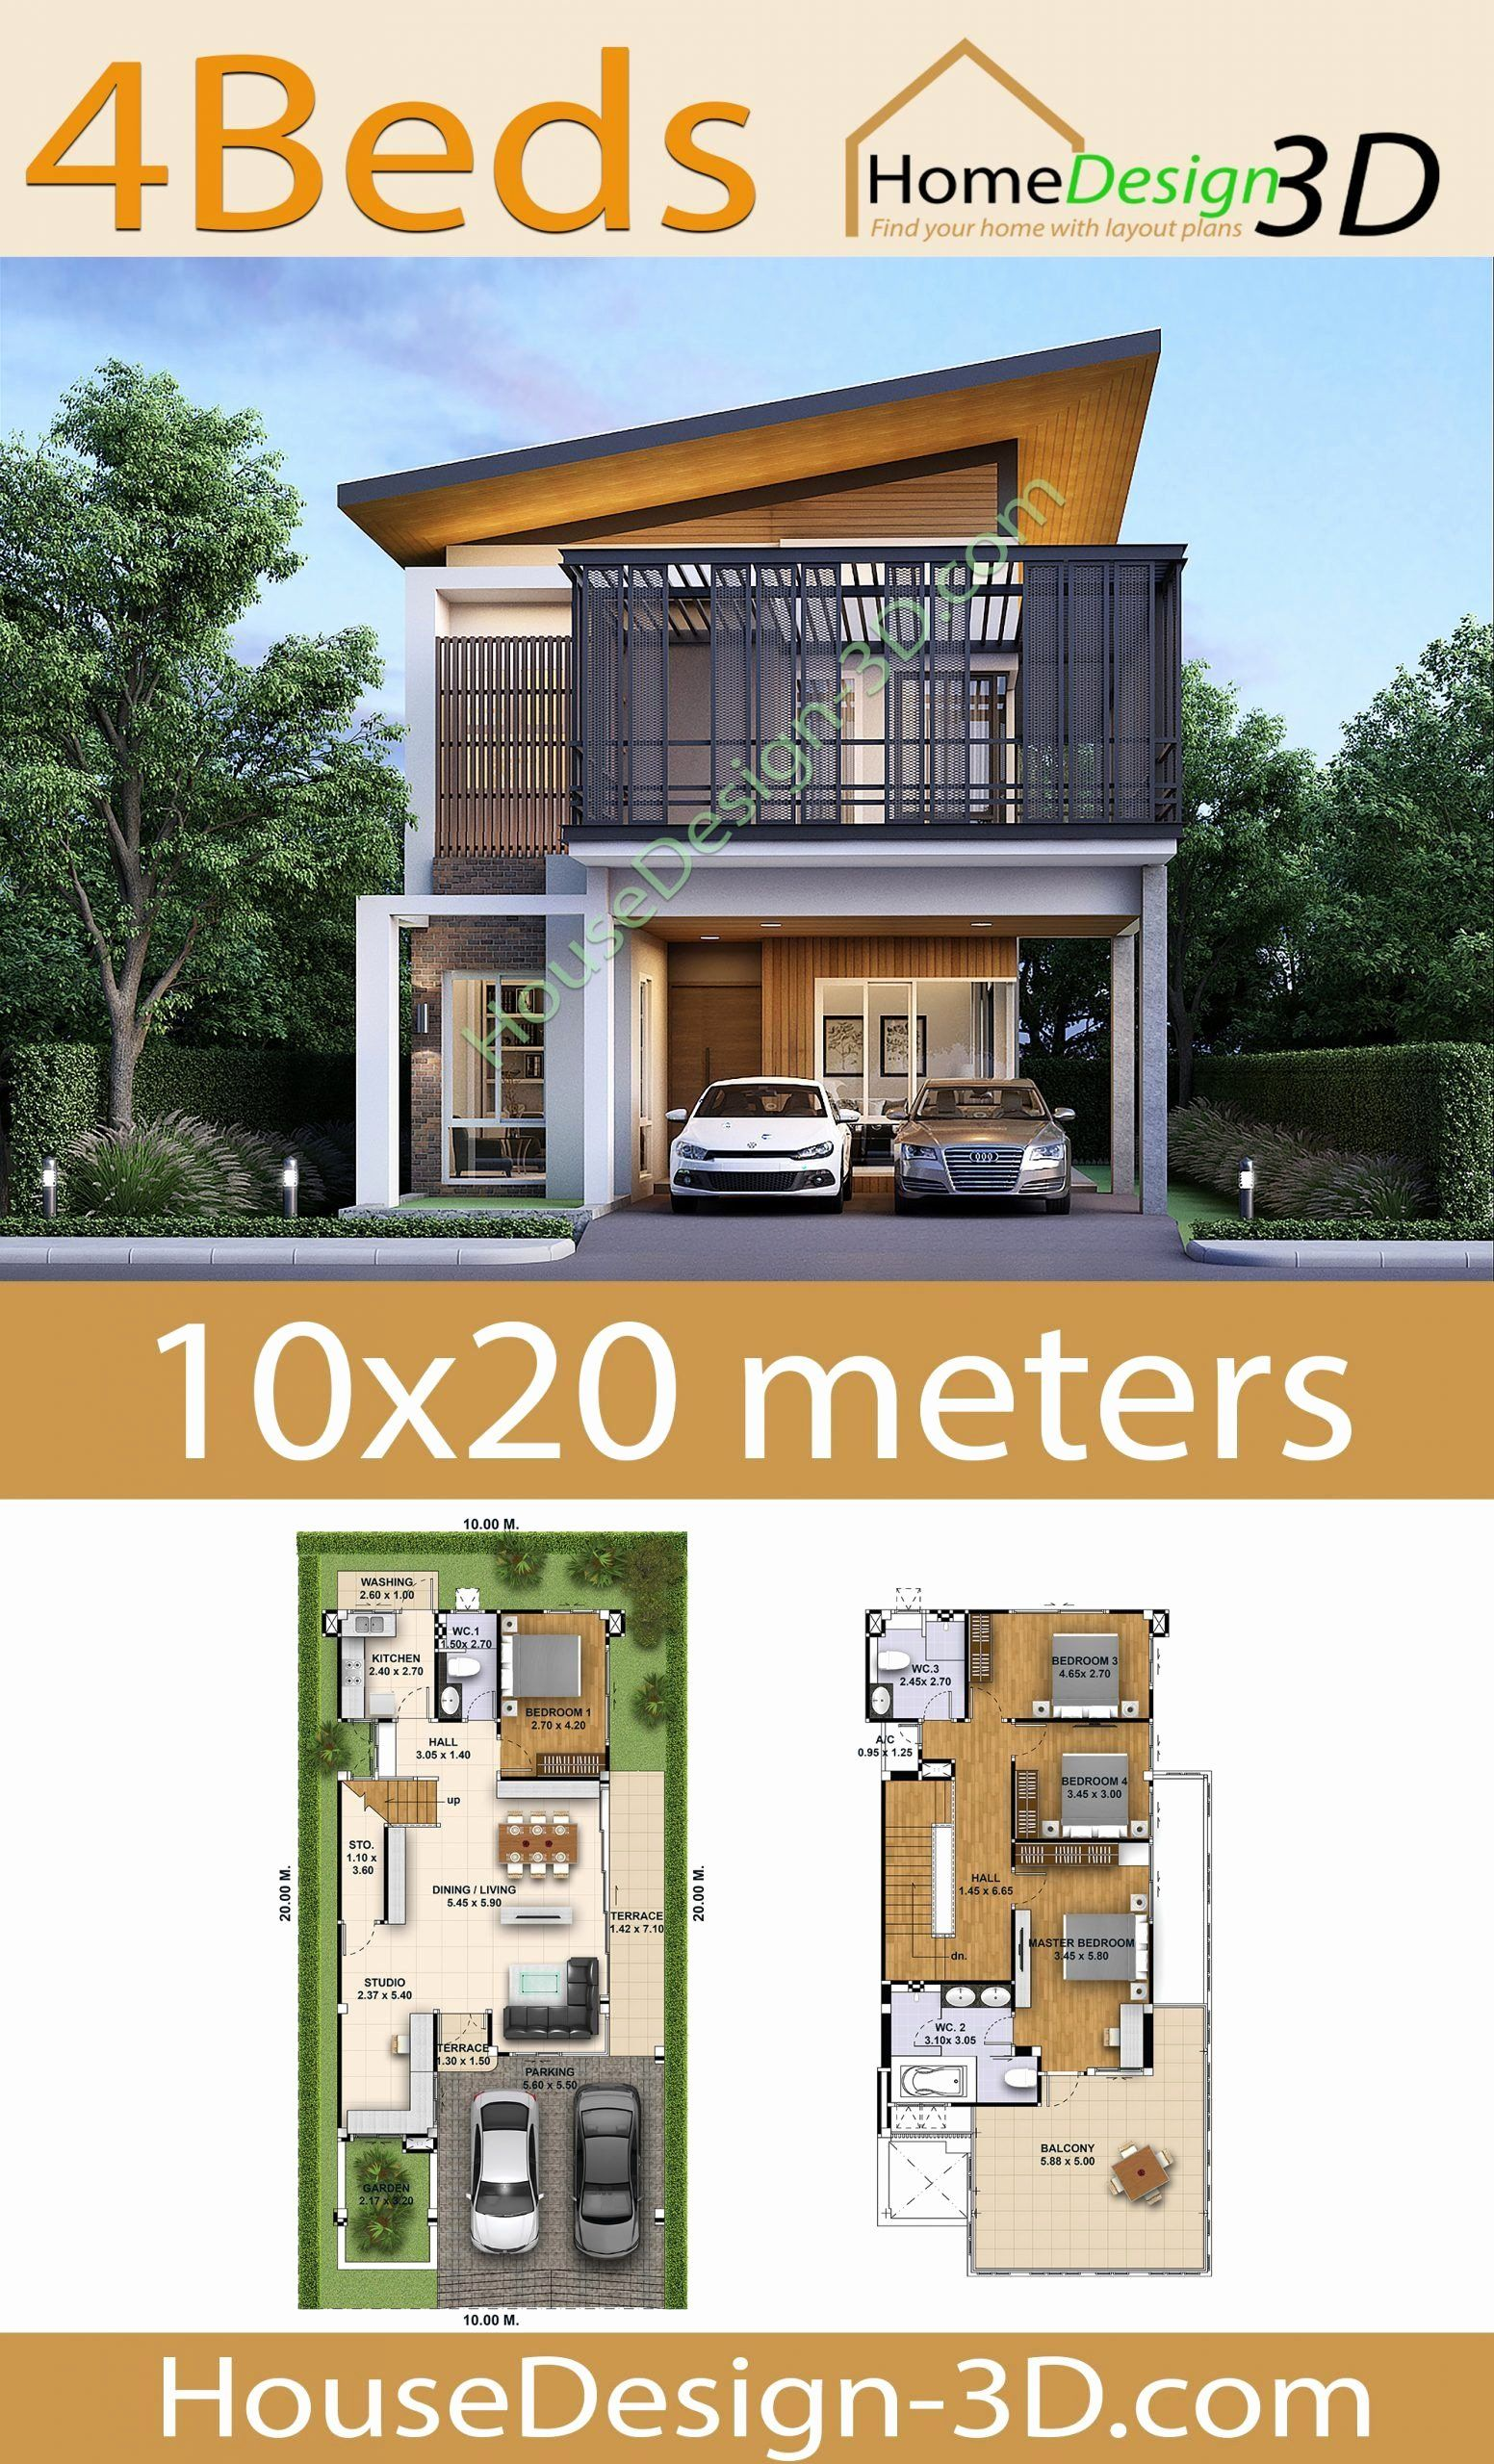 10 X 20 Meters Is The Area That These Home Plans Are Turning Into Homes Housing In This Size Area Is Poss Tiny House Floor Plans Floor Plan Design How To Plan